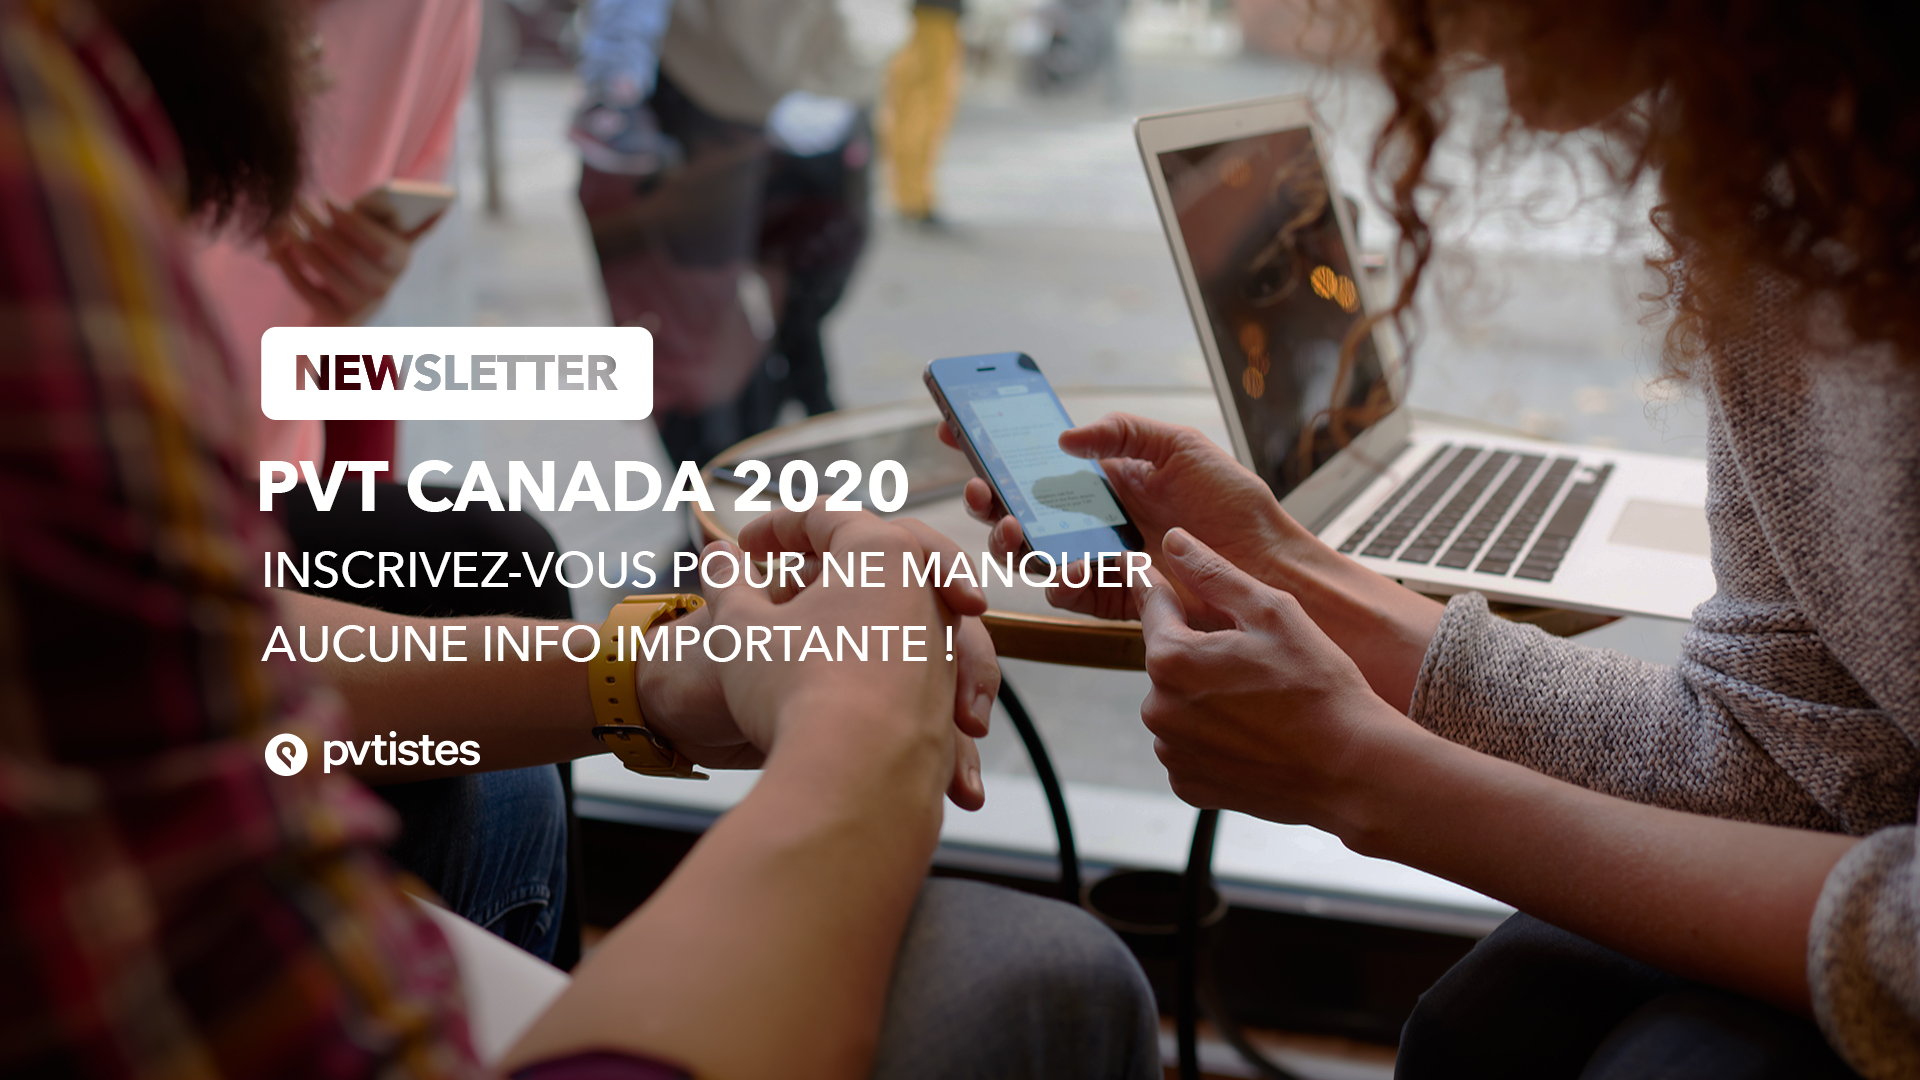 rs-pvtistes-newsletter-pvt-canada-2020